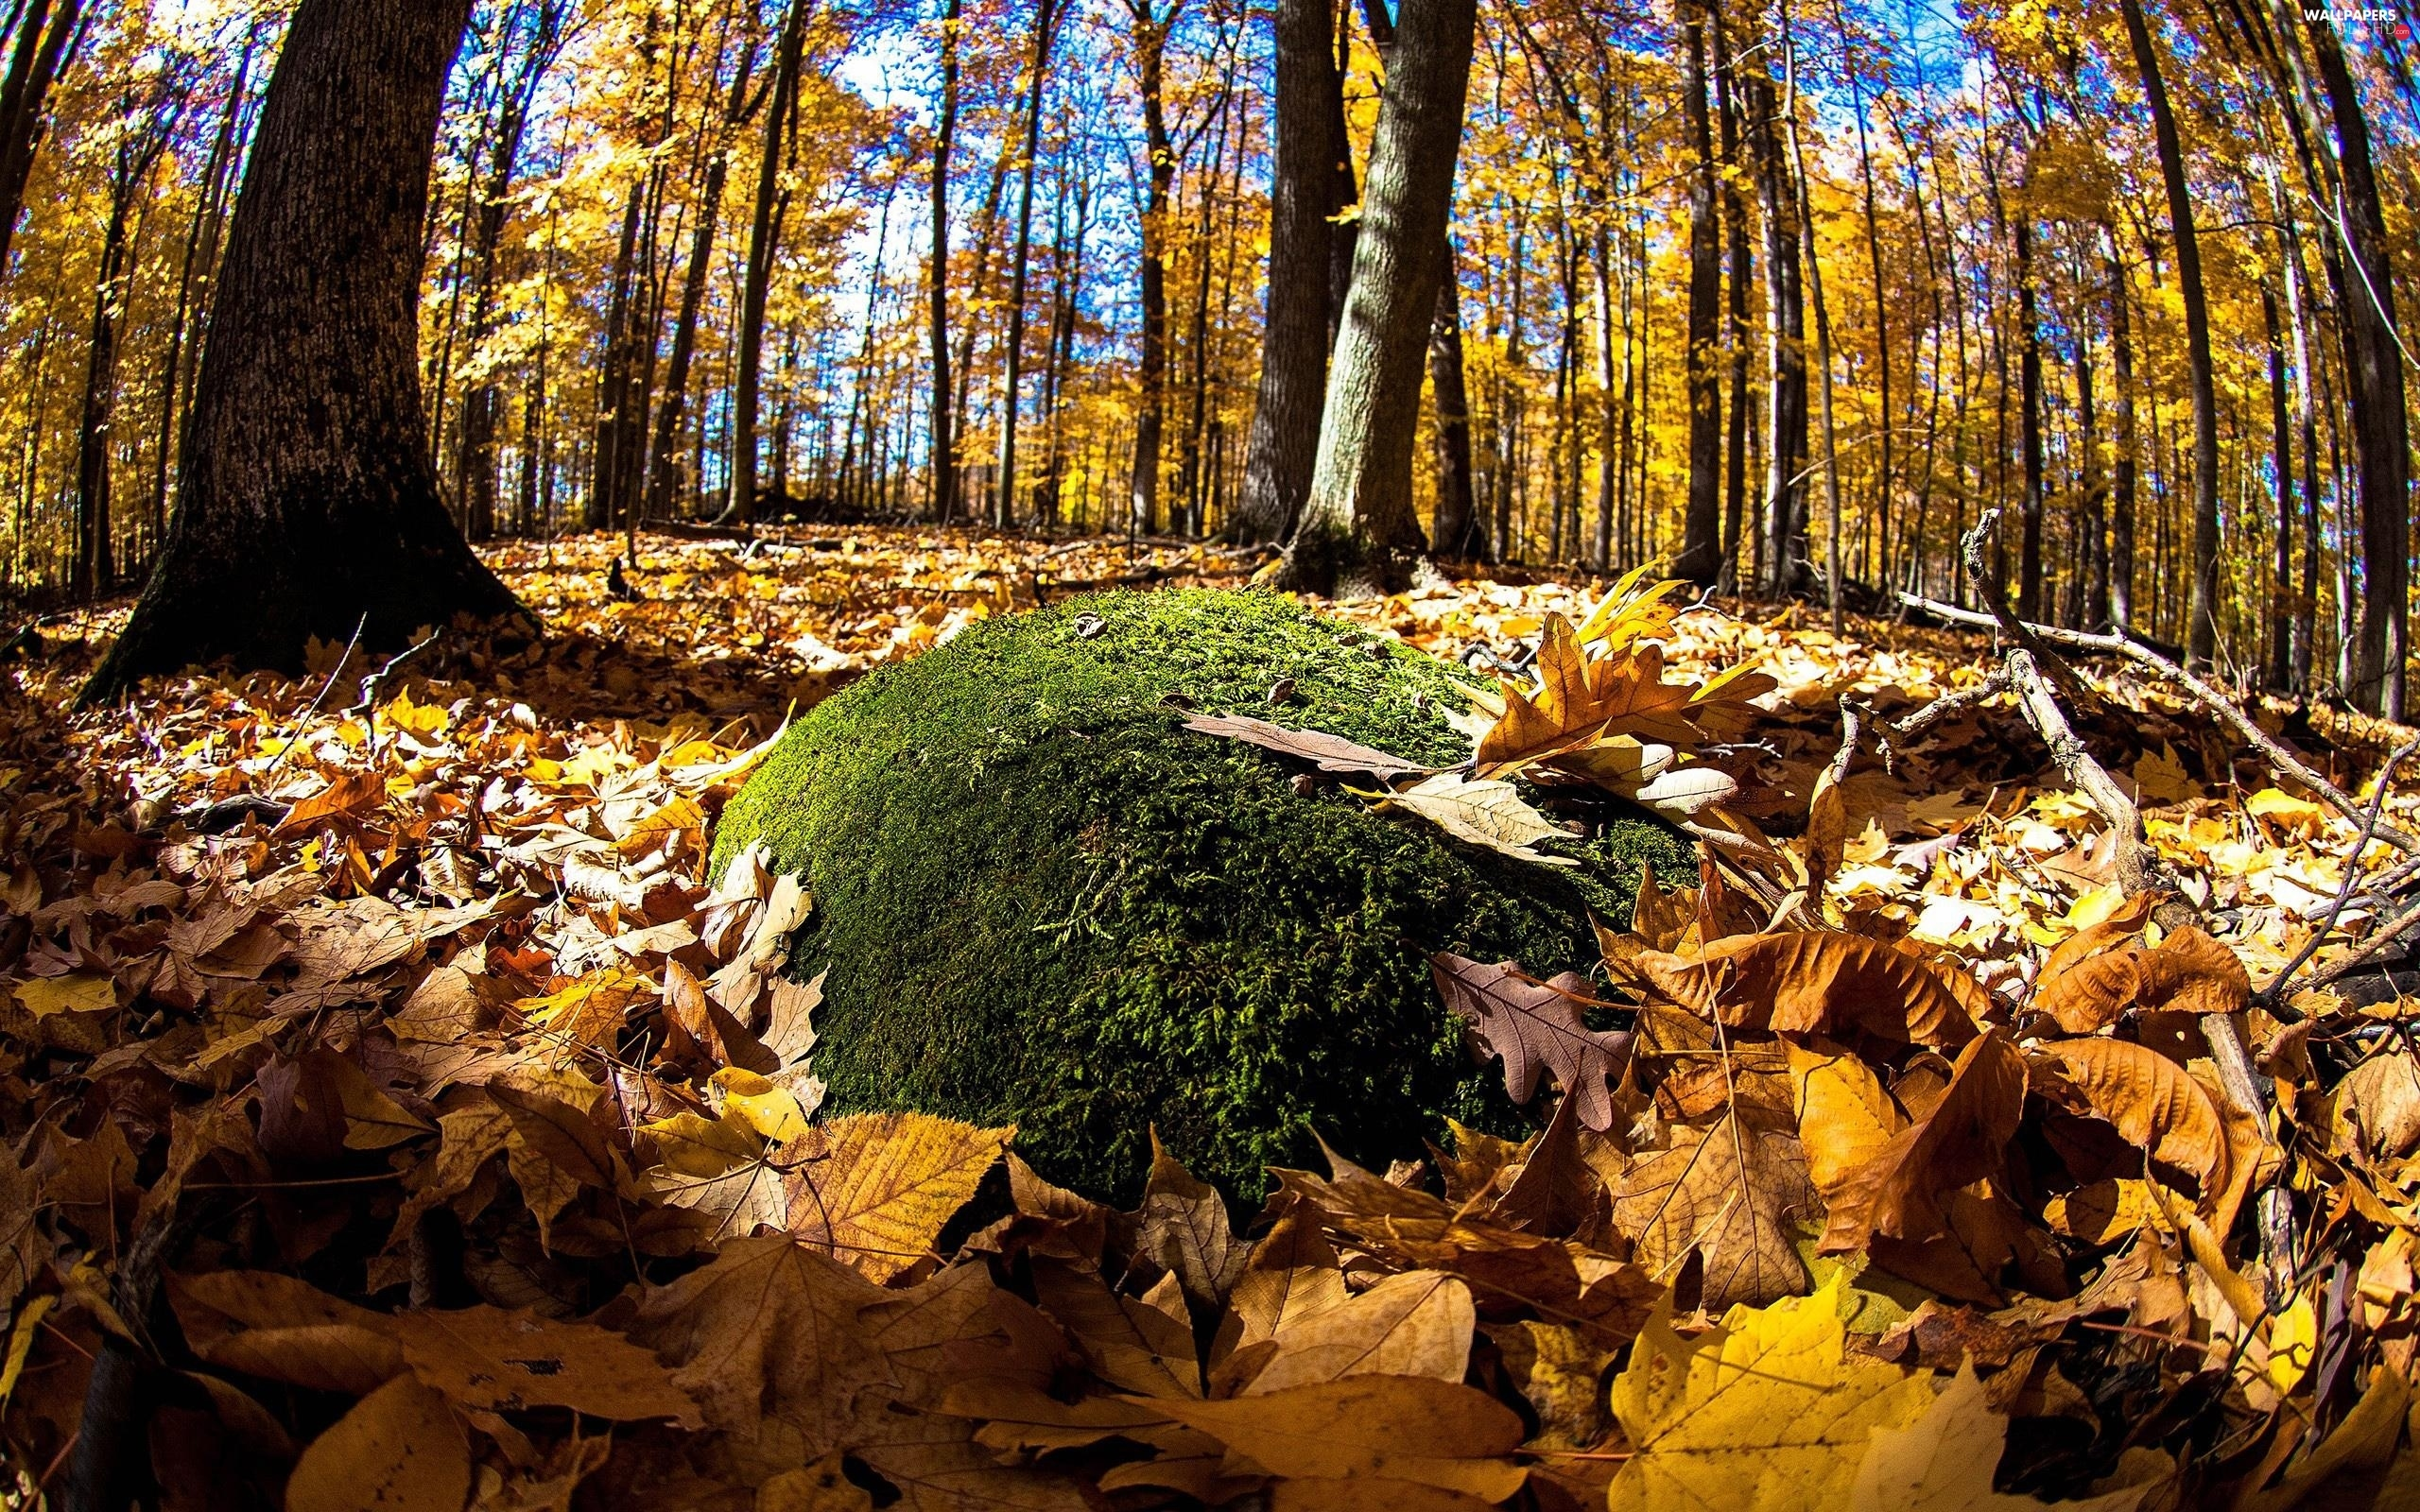 Moss, Leaf, forest, autumn